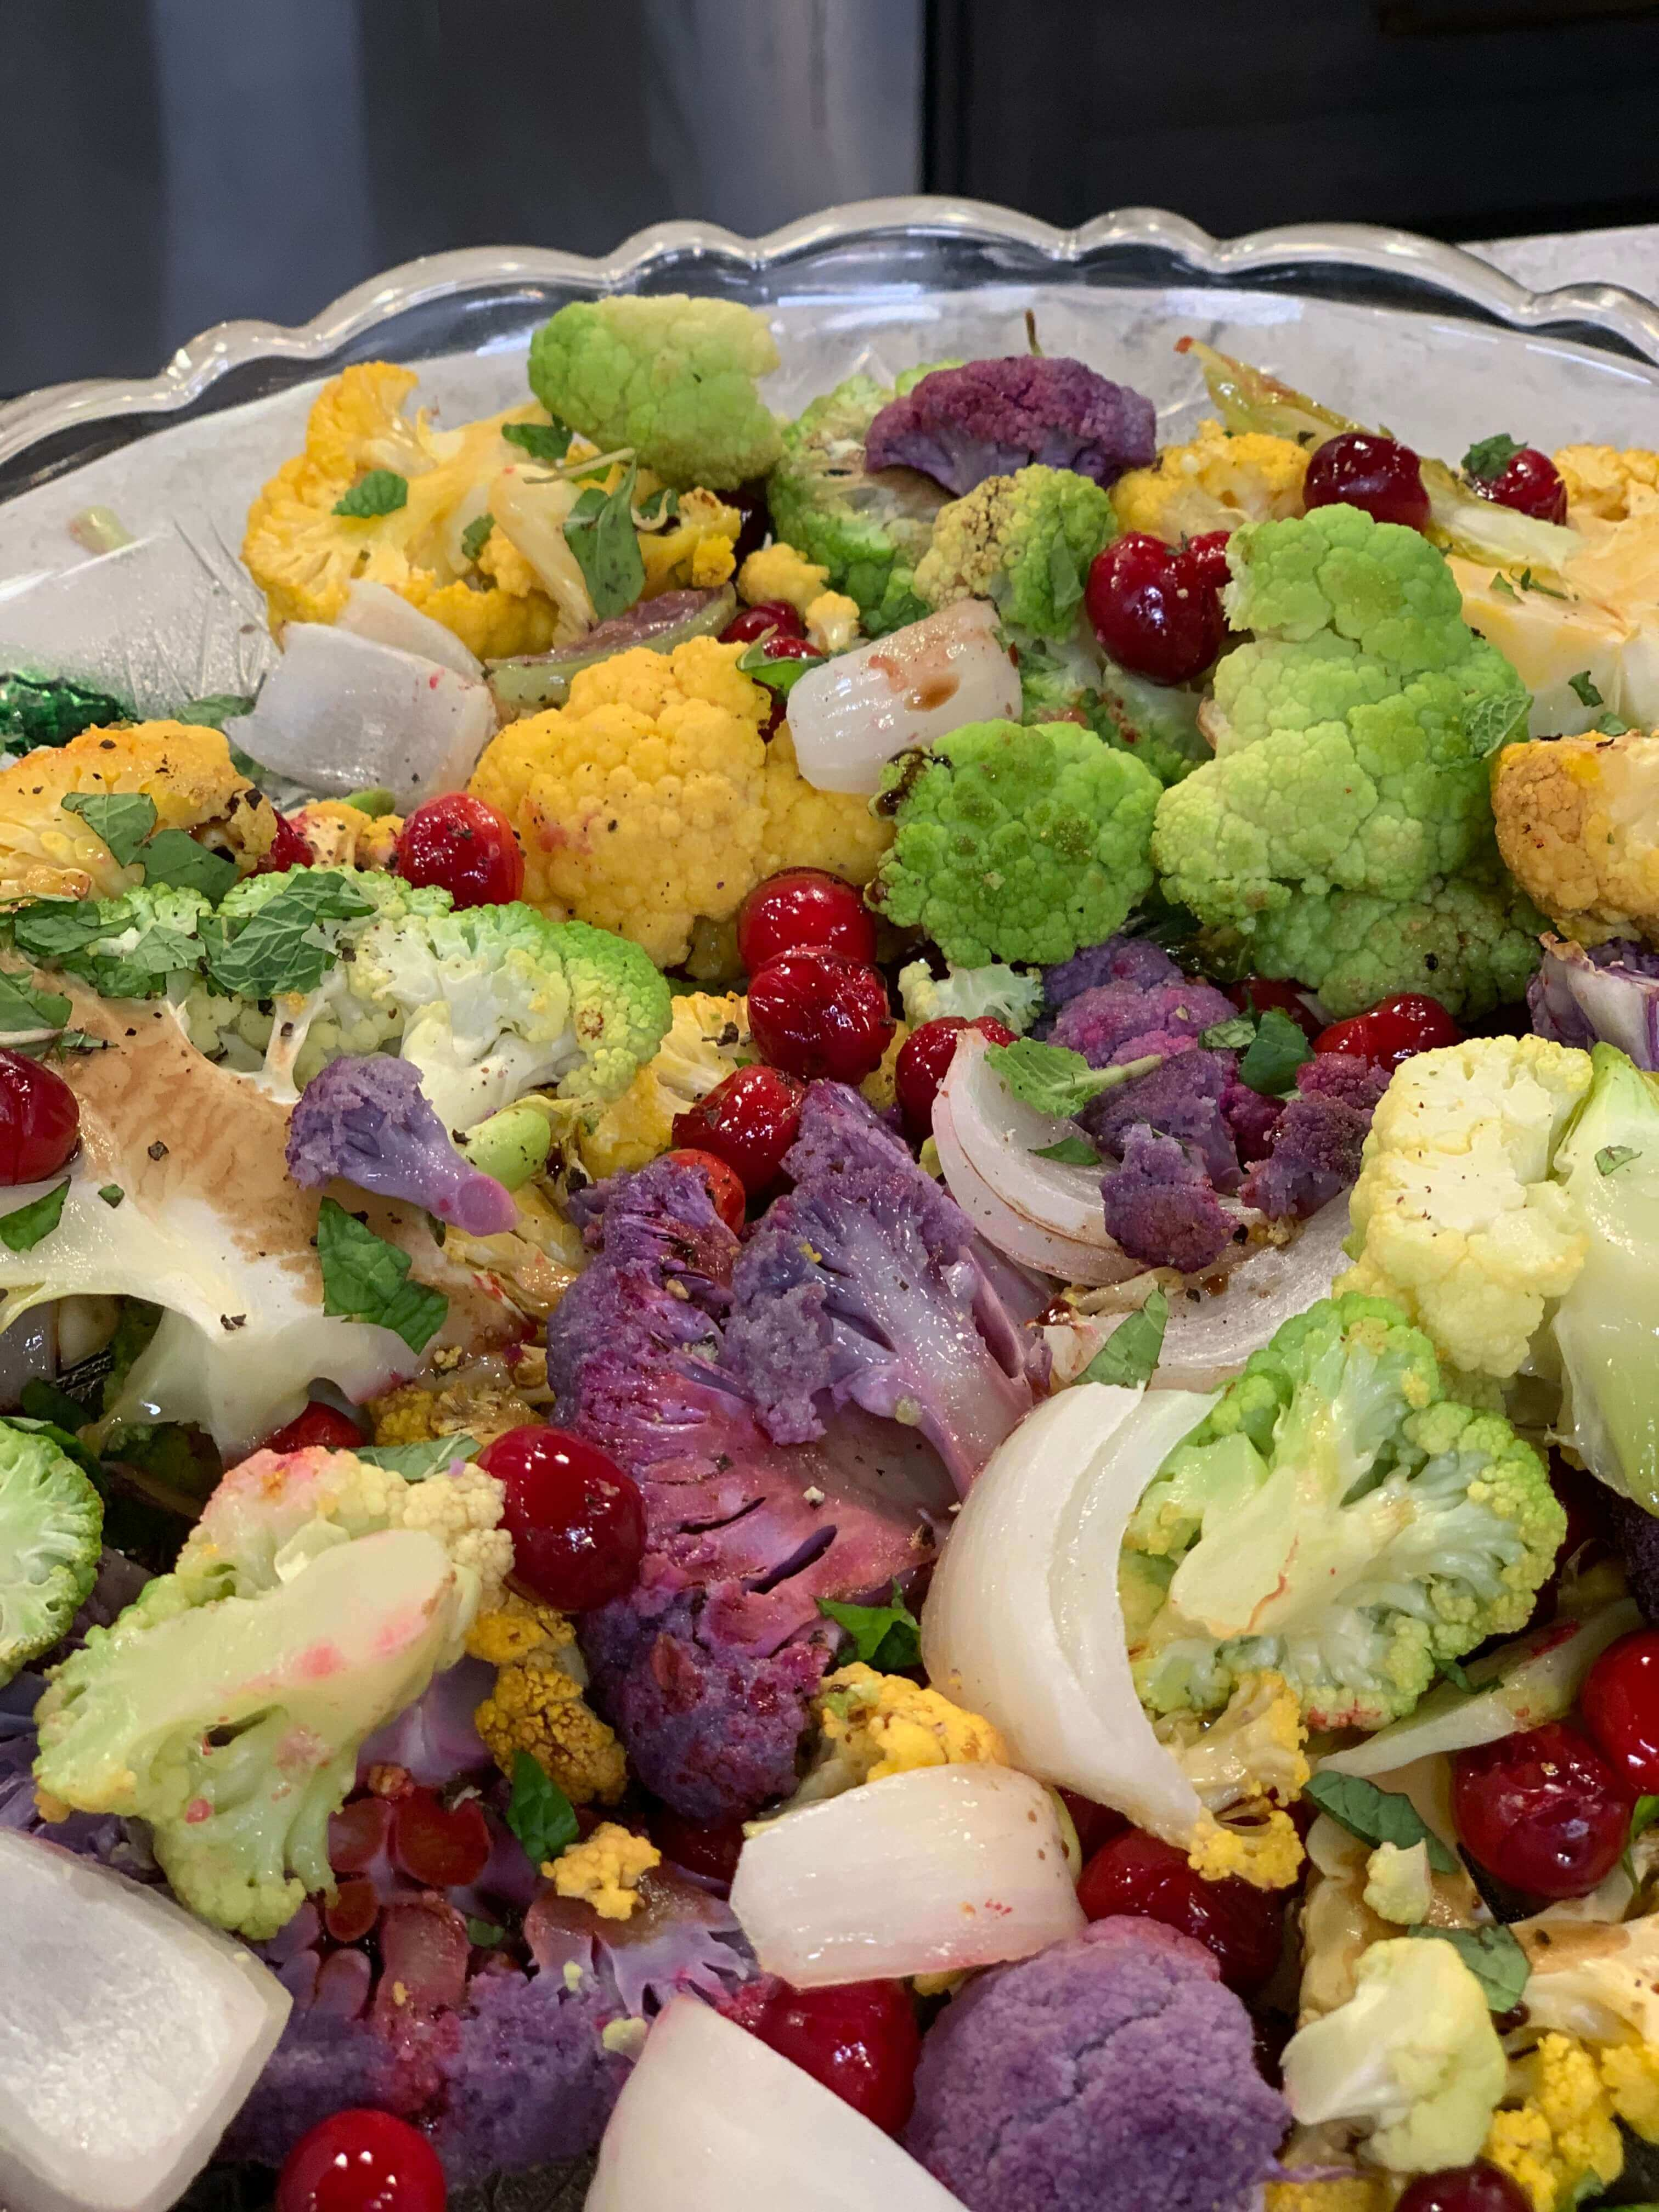 Holiday Recipes: Roasted Cauliflower with Cranberries